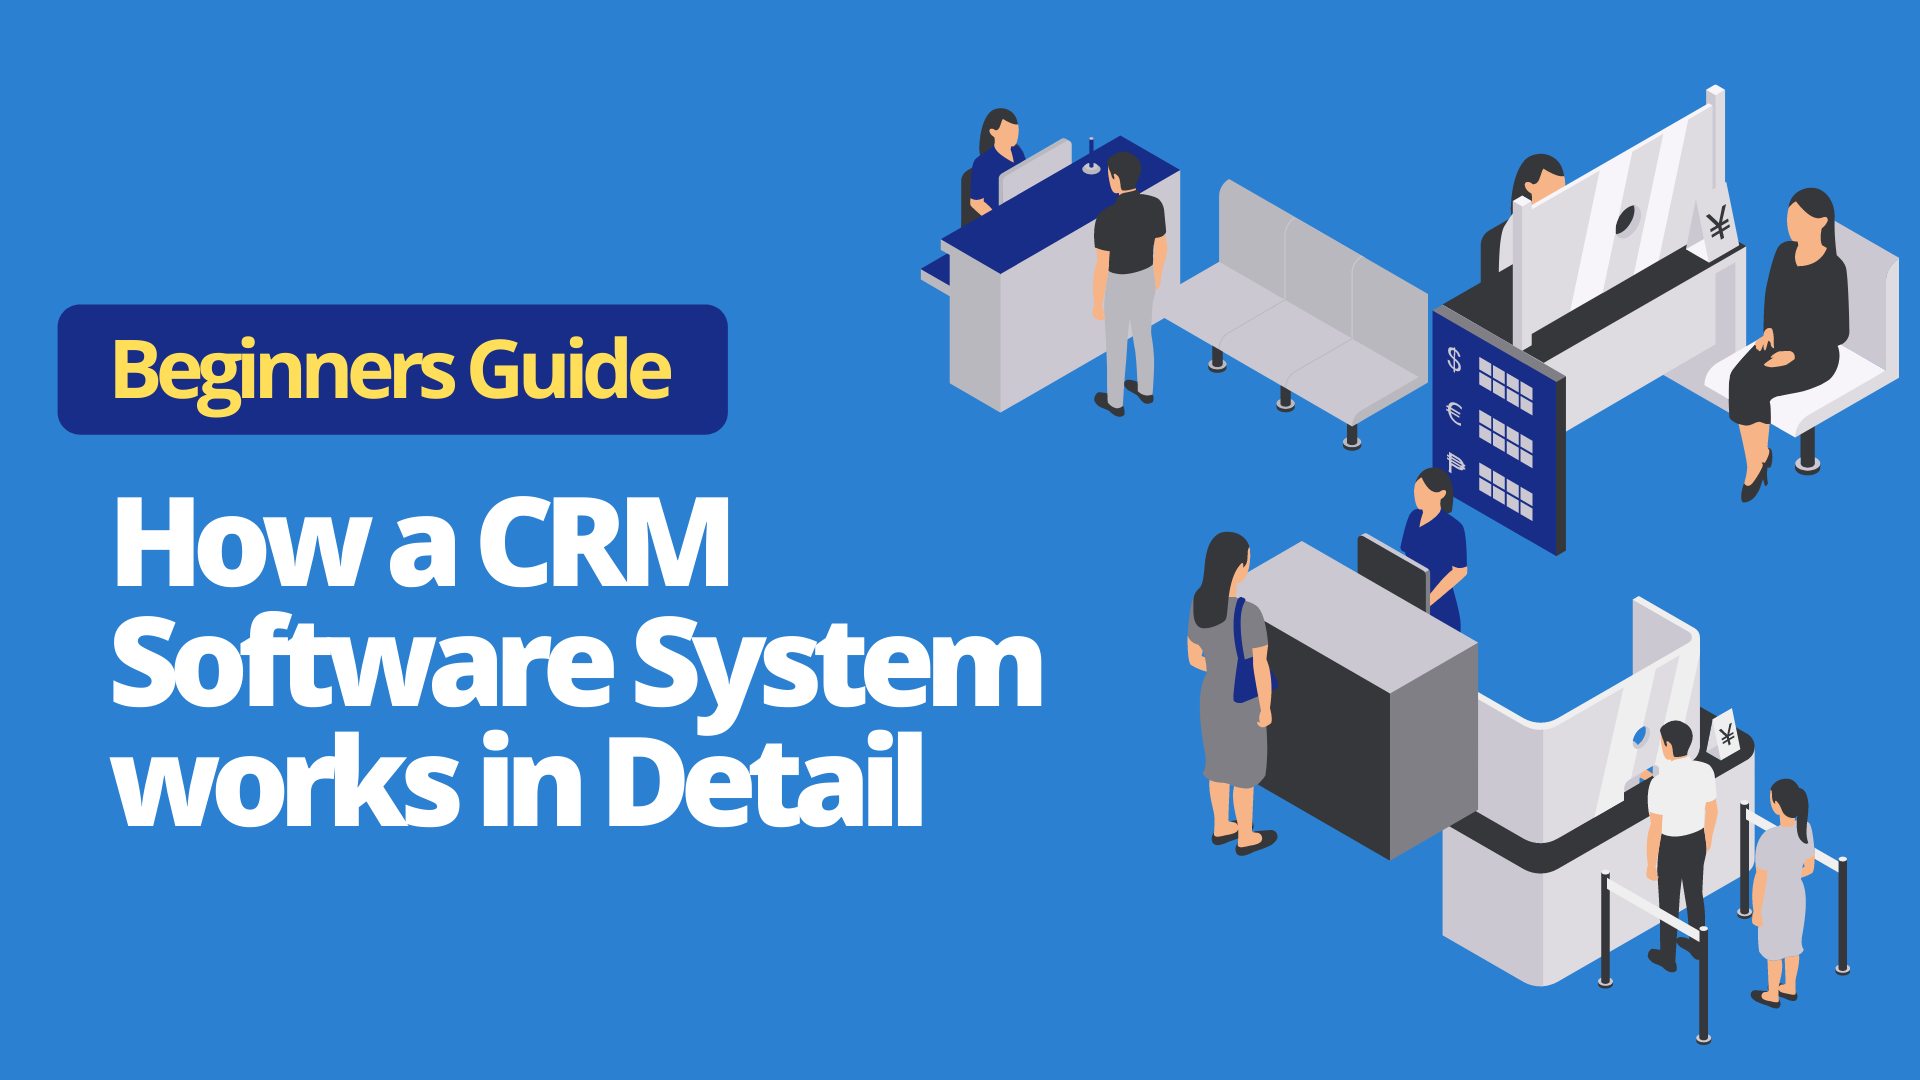 How a CRM Software System works